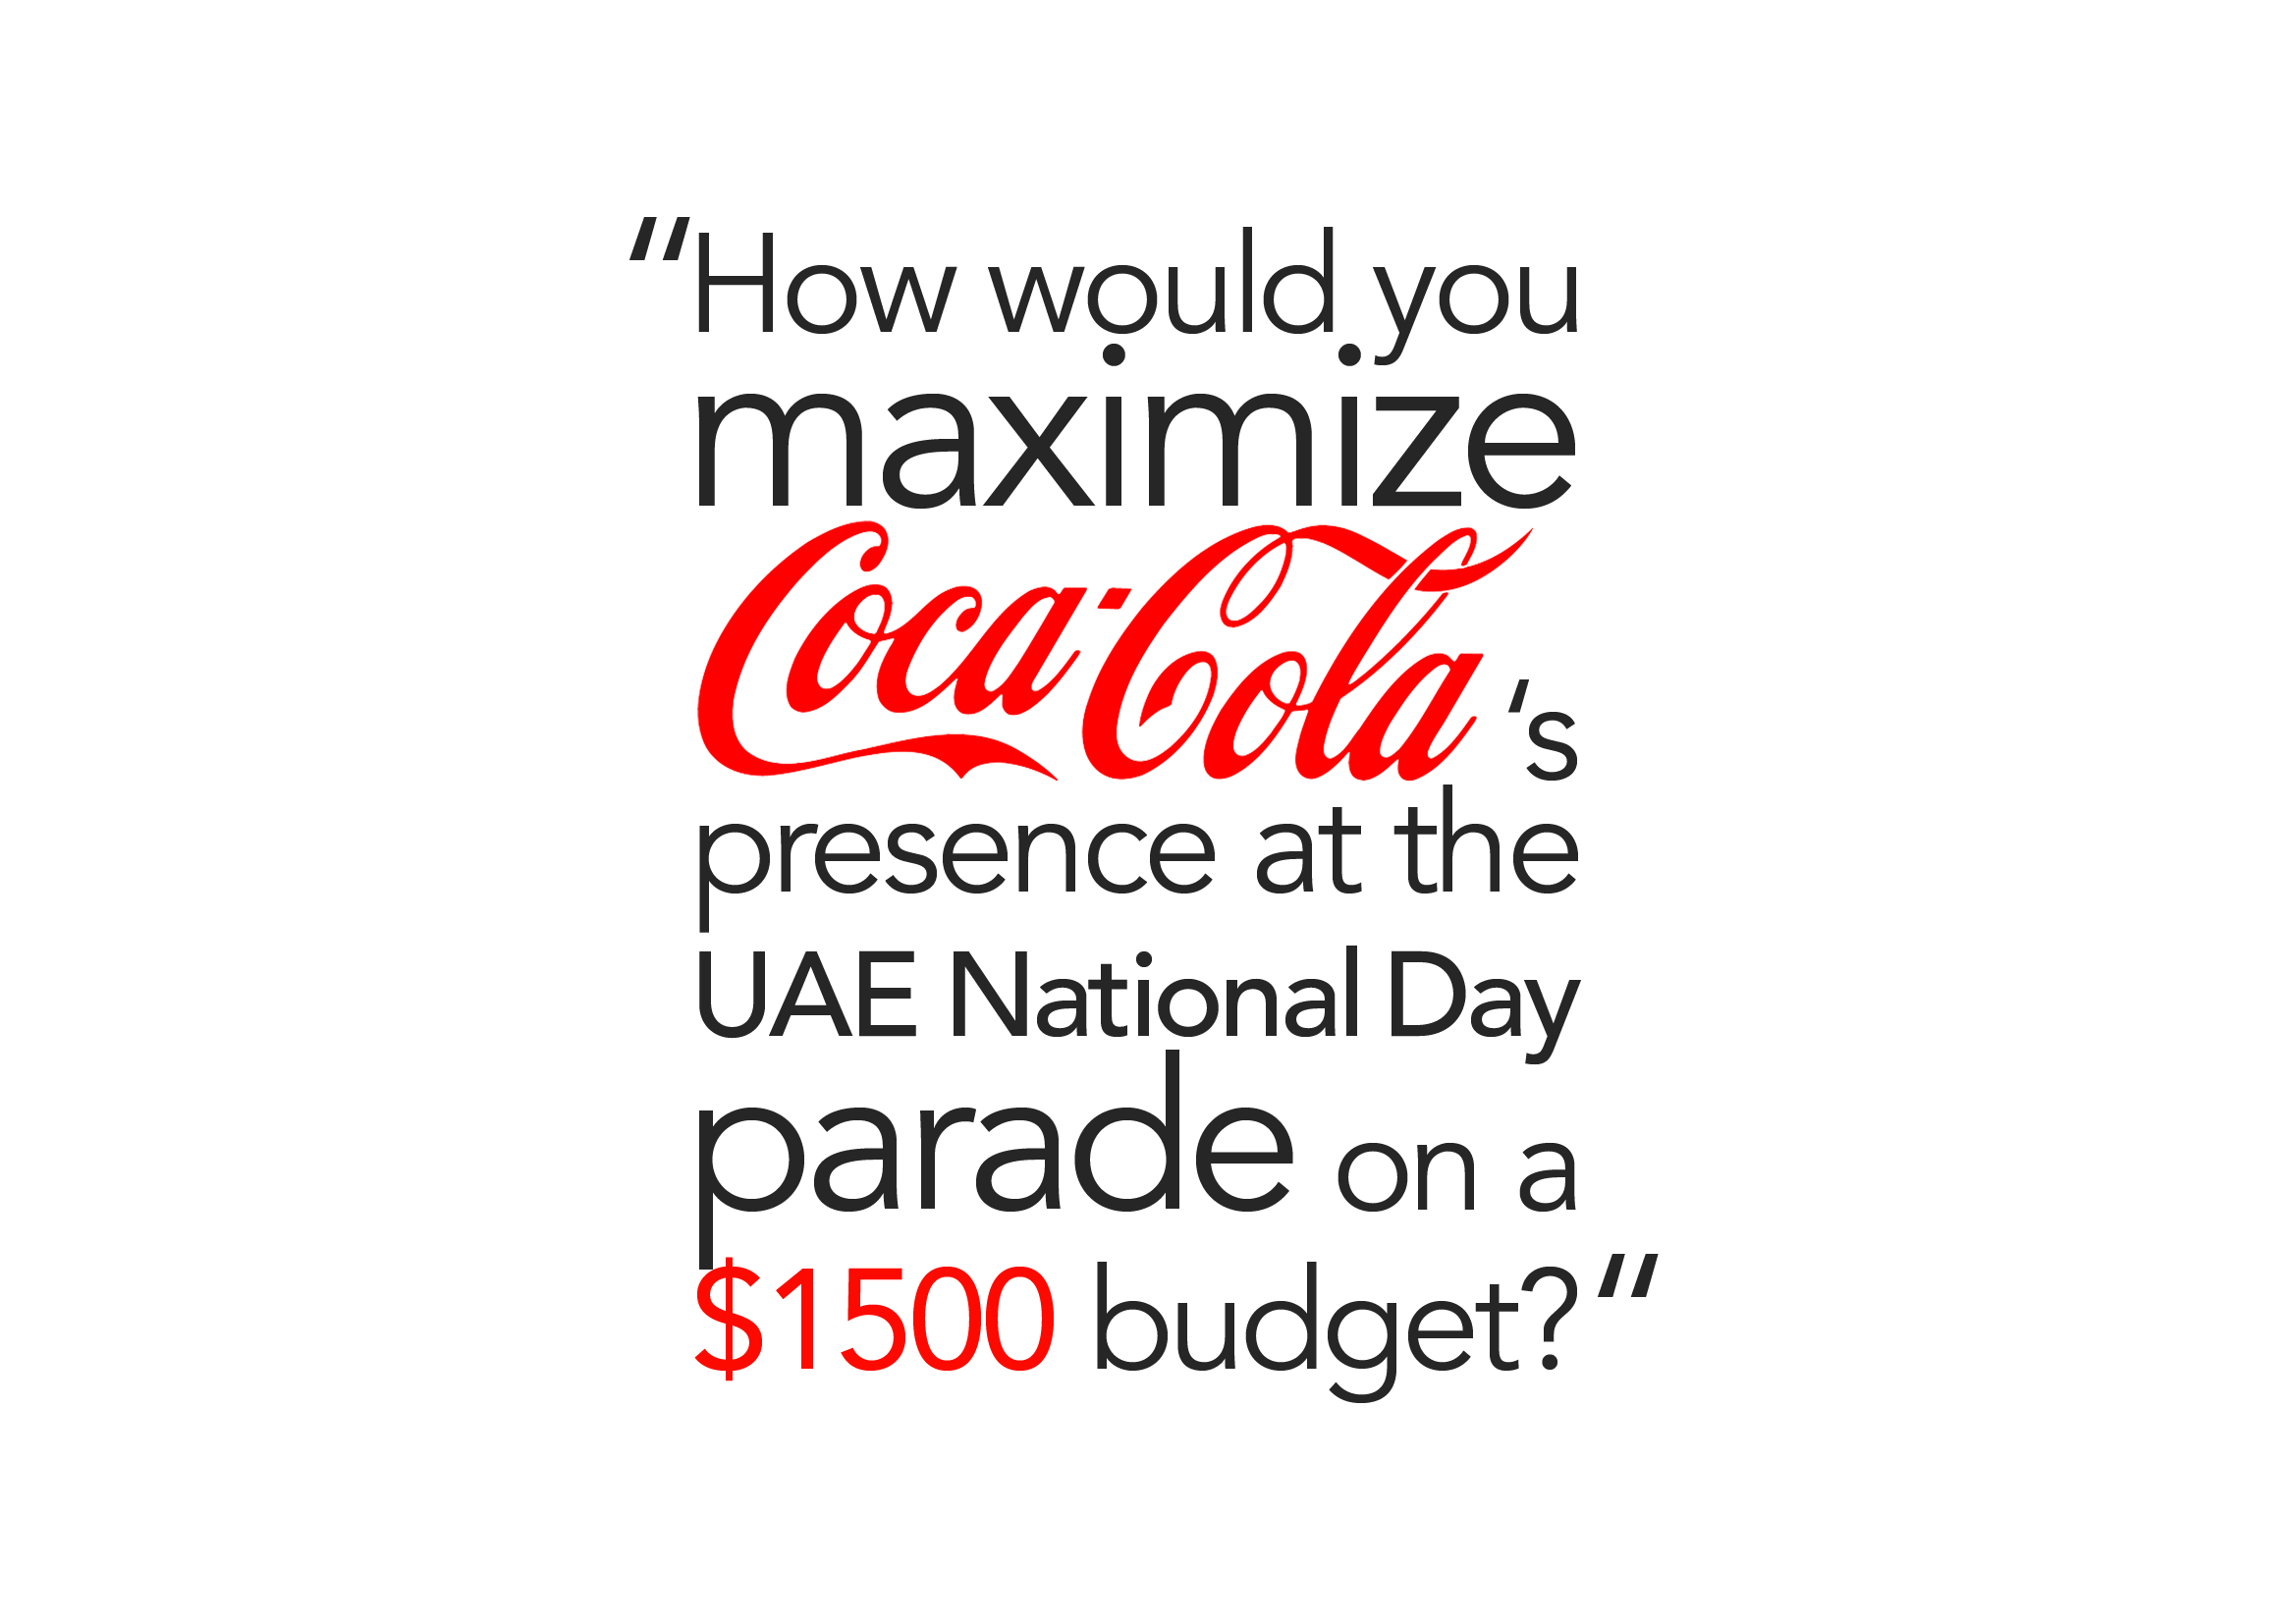 CocaCola-UAE40yrs-Campaign-Question